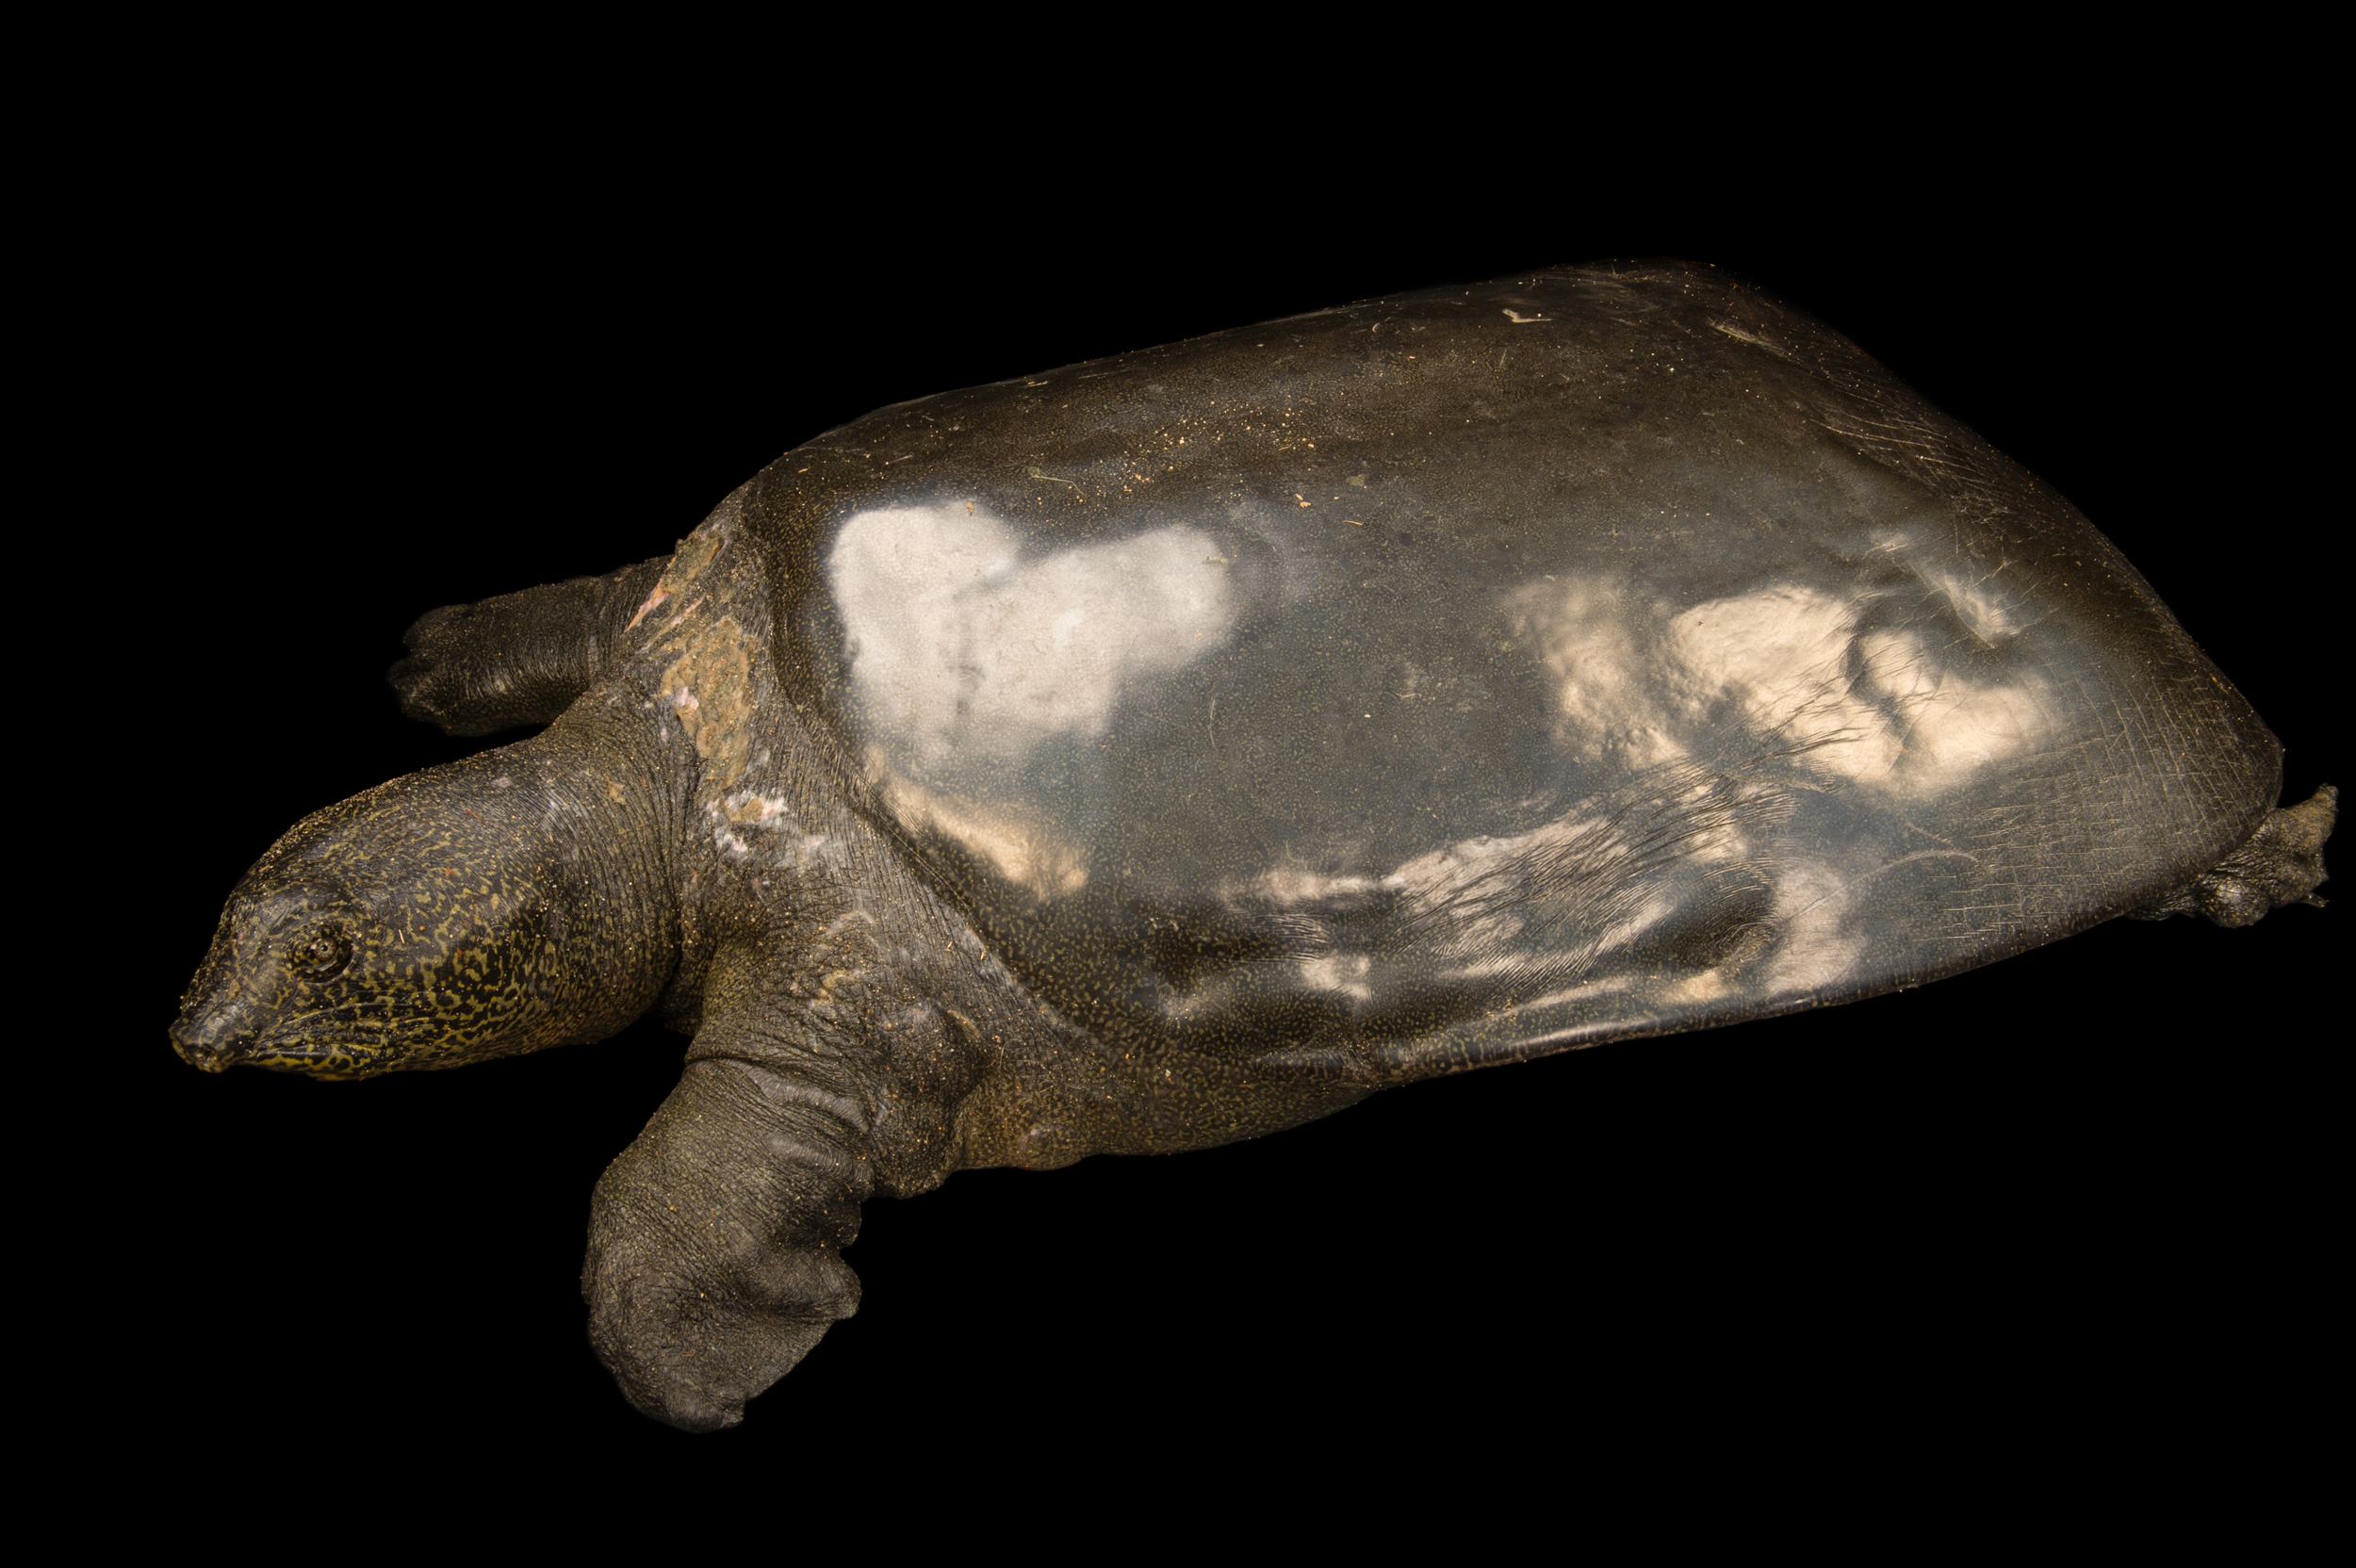 Yangtze Giant Softshell Turtle - Rafetus swinhoei